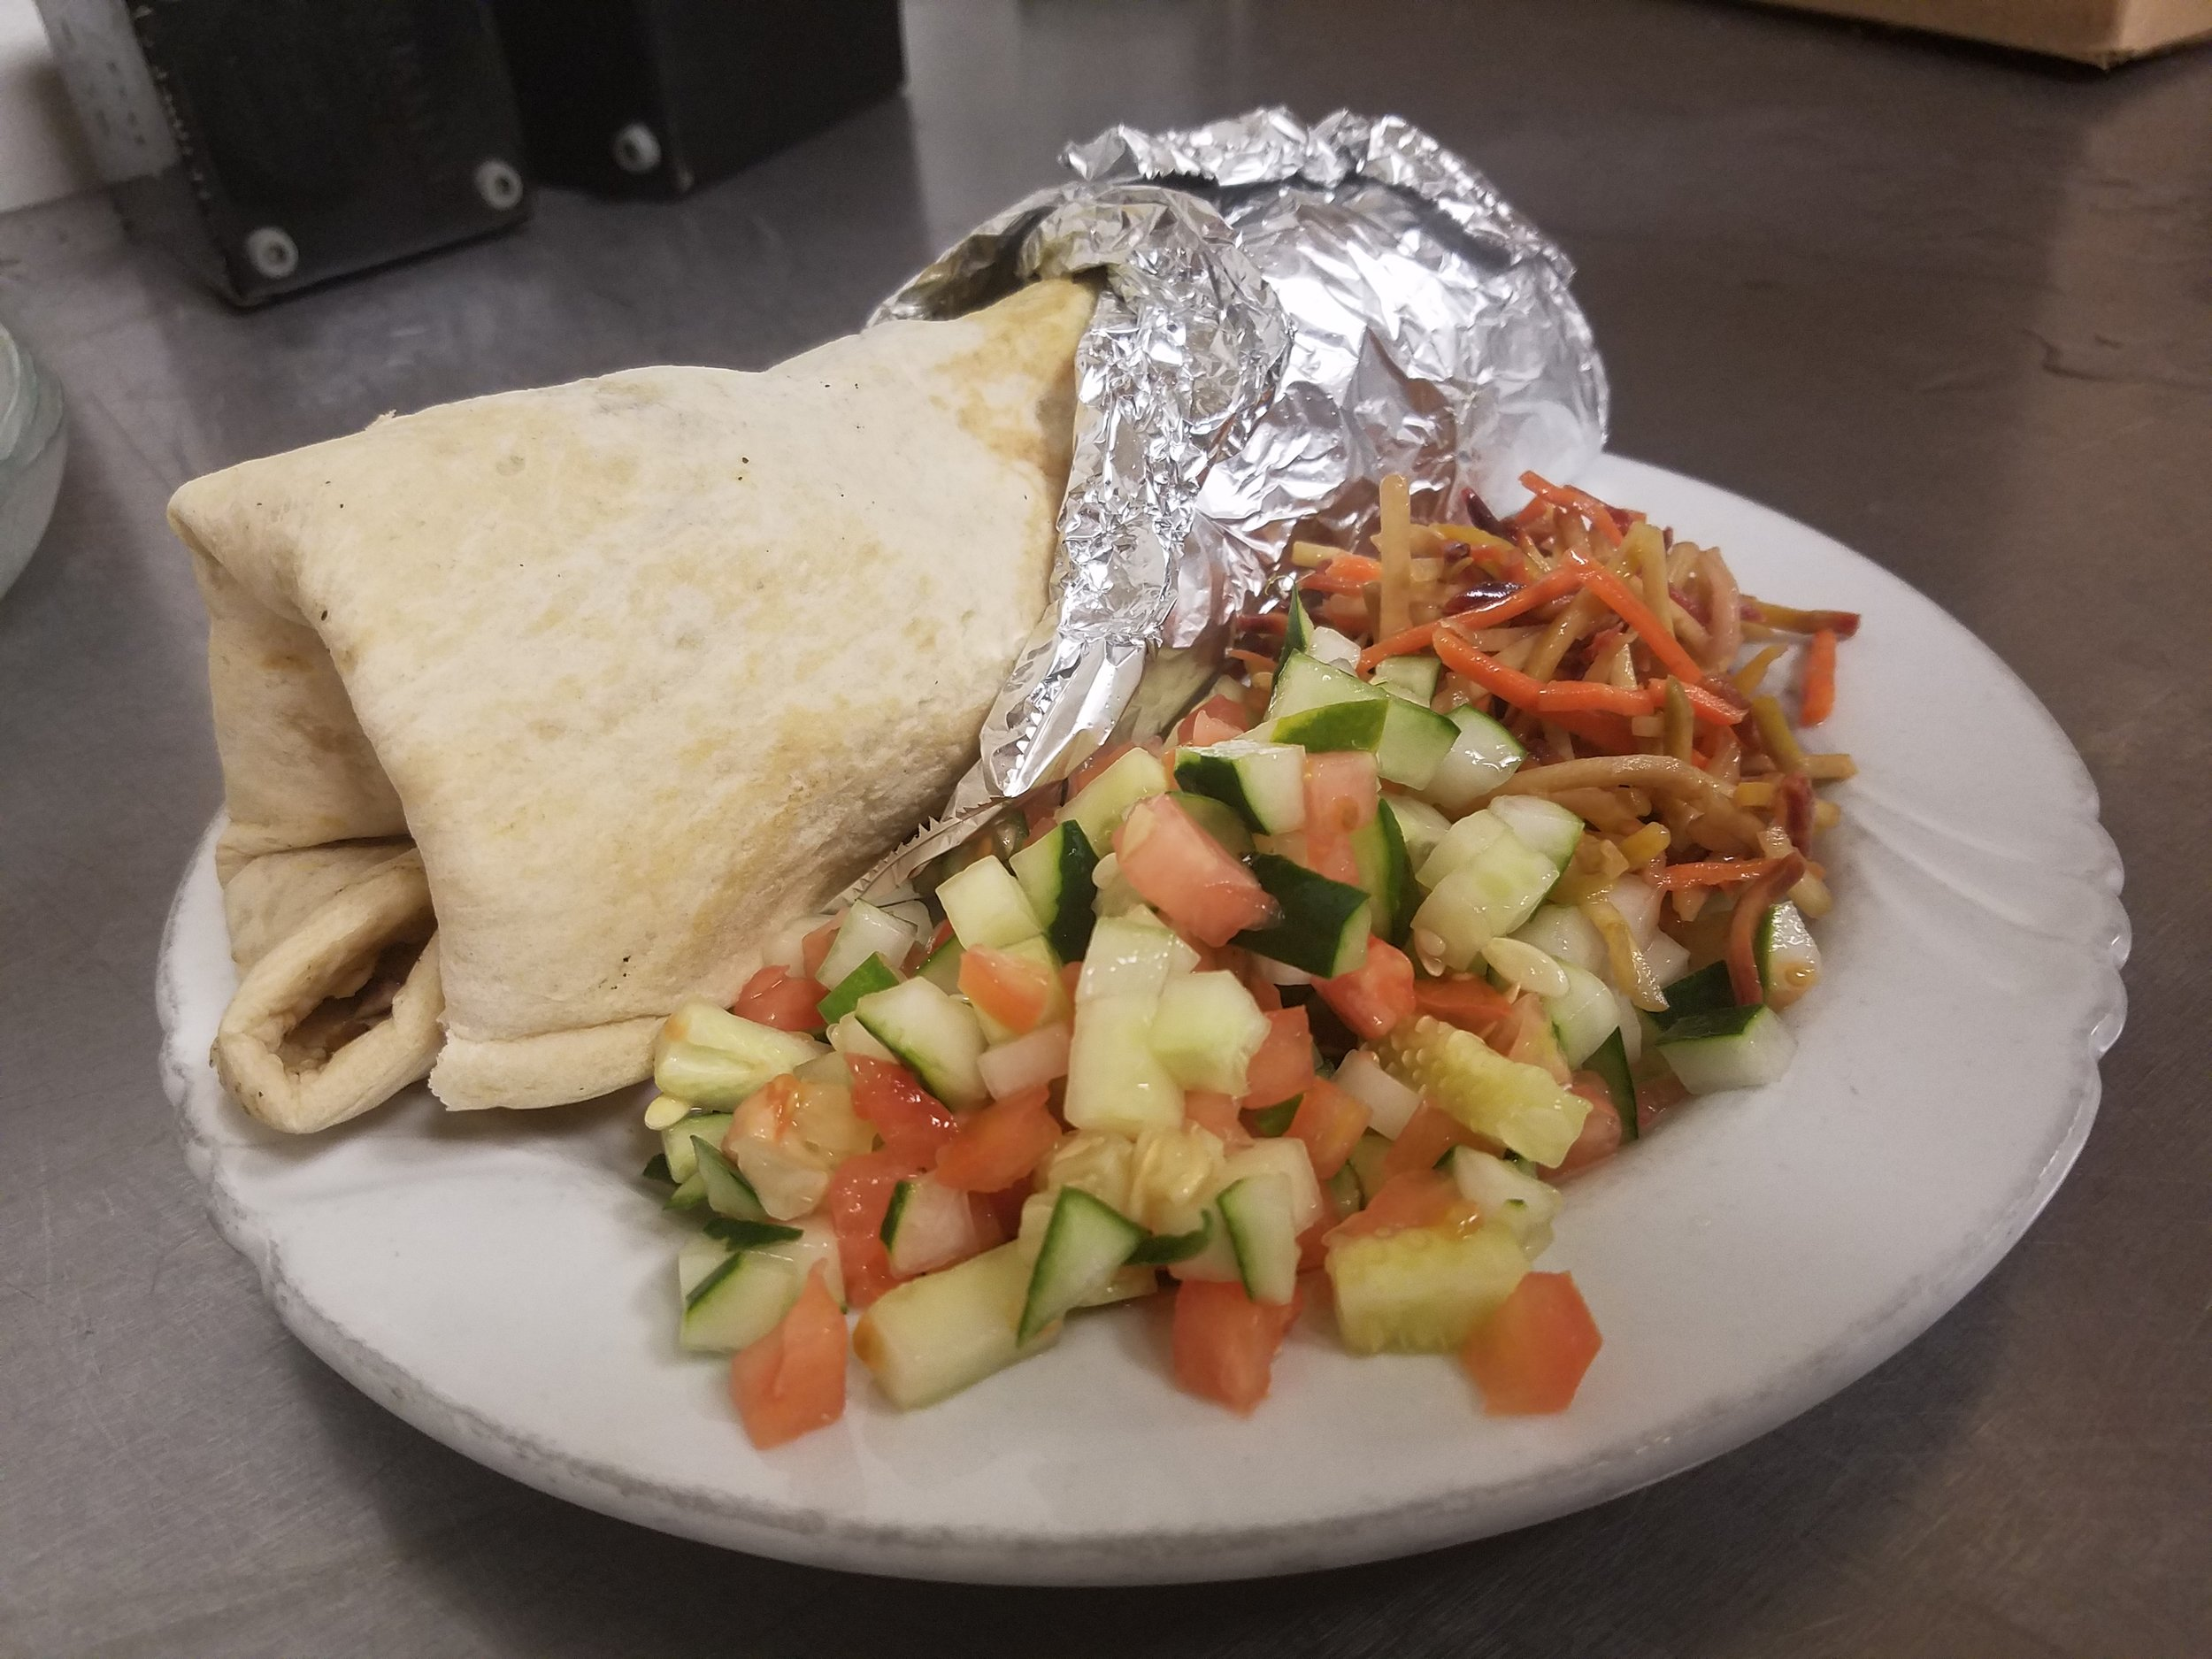 Kosher Restuarant in Fair Lawn, NJ - Perfect Pita - Shwarma, Falafel, Chicken, Salads - Dine in or Take Out and Catering - Bergen County (22).jpg